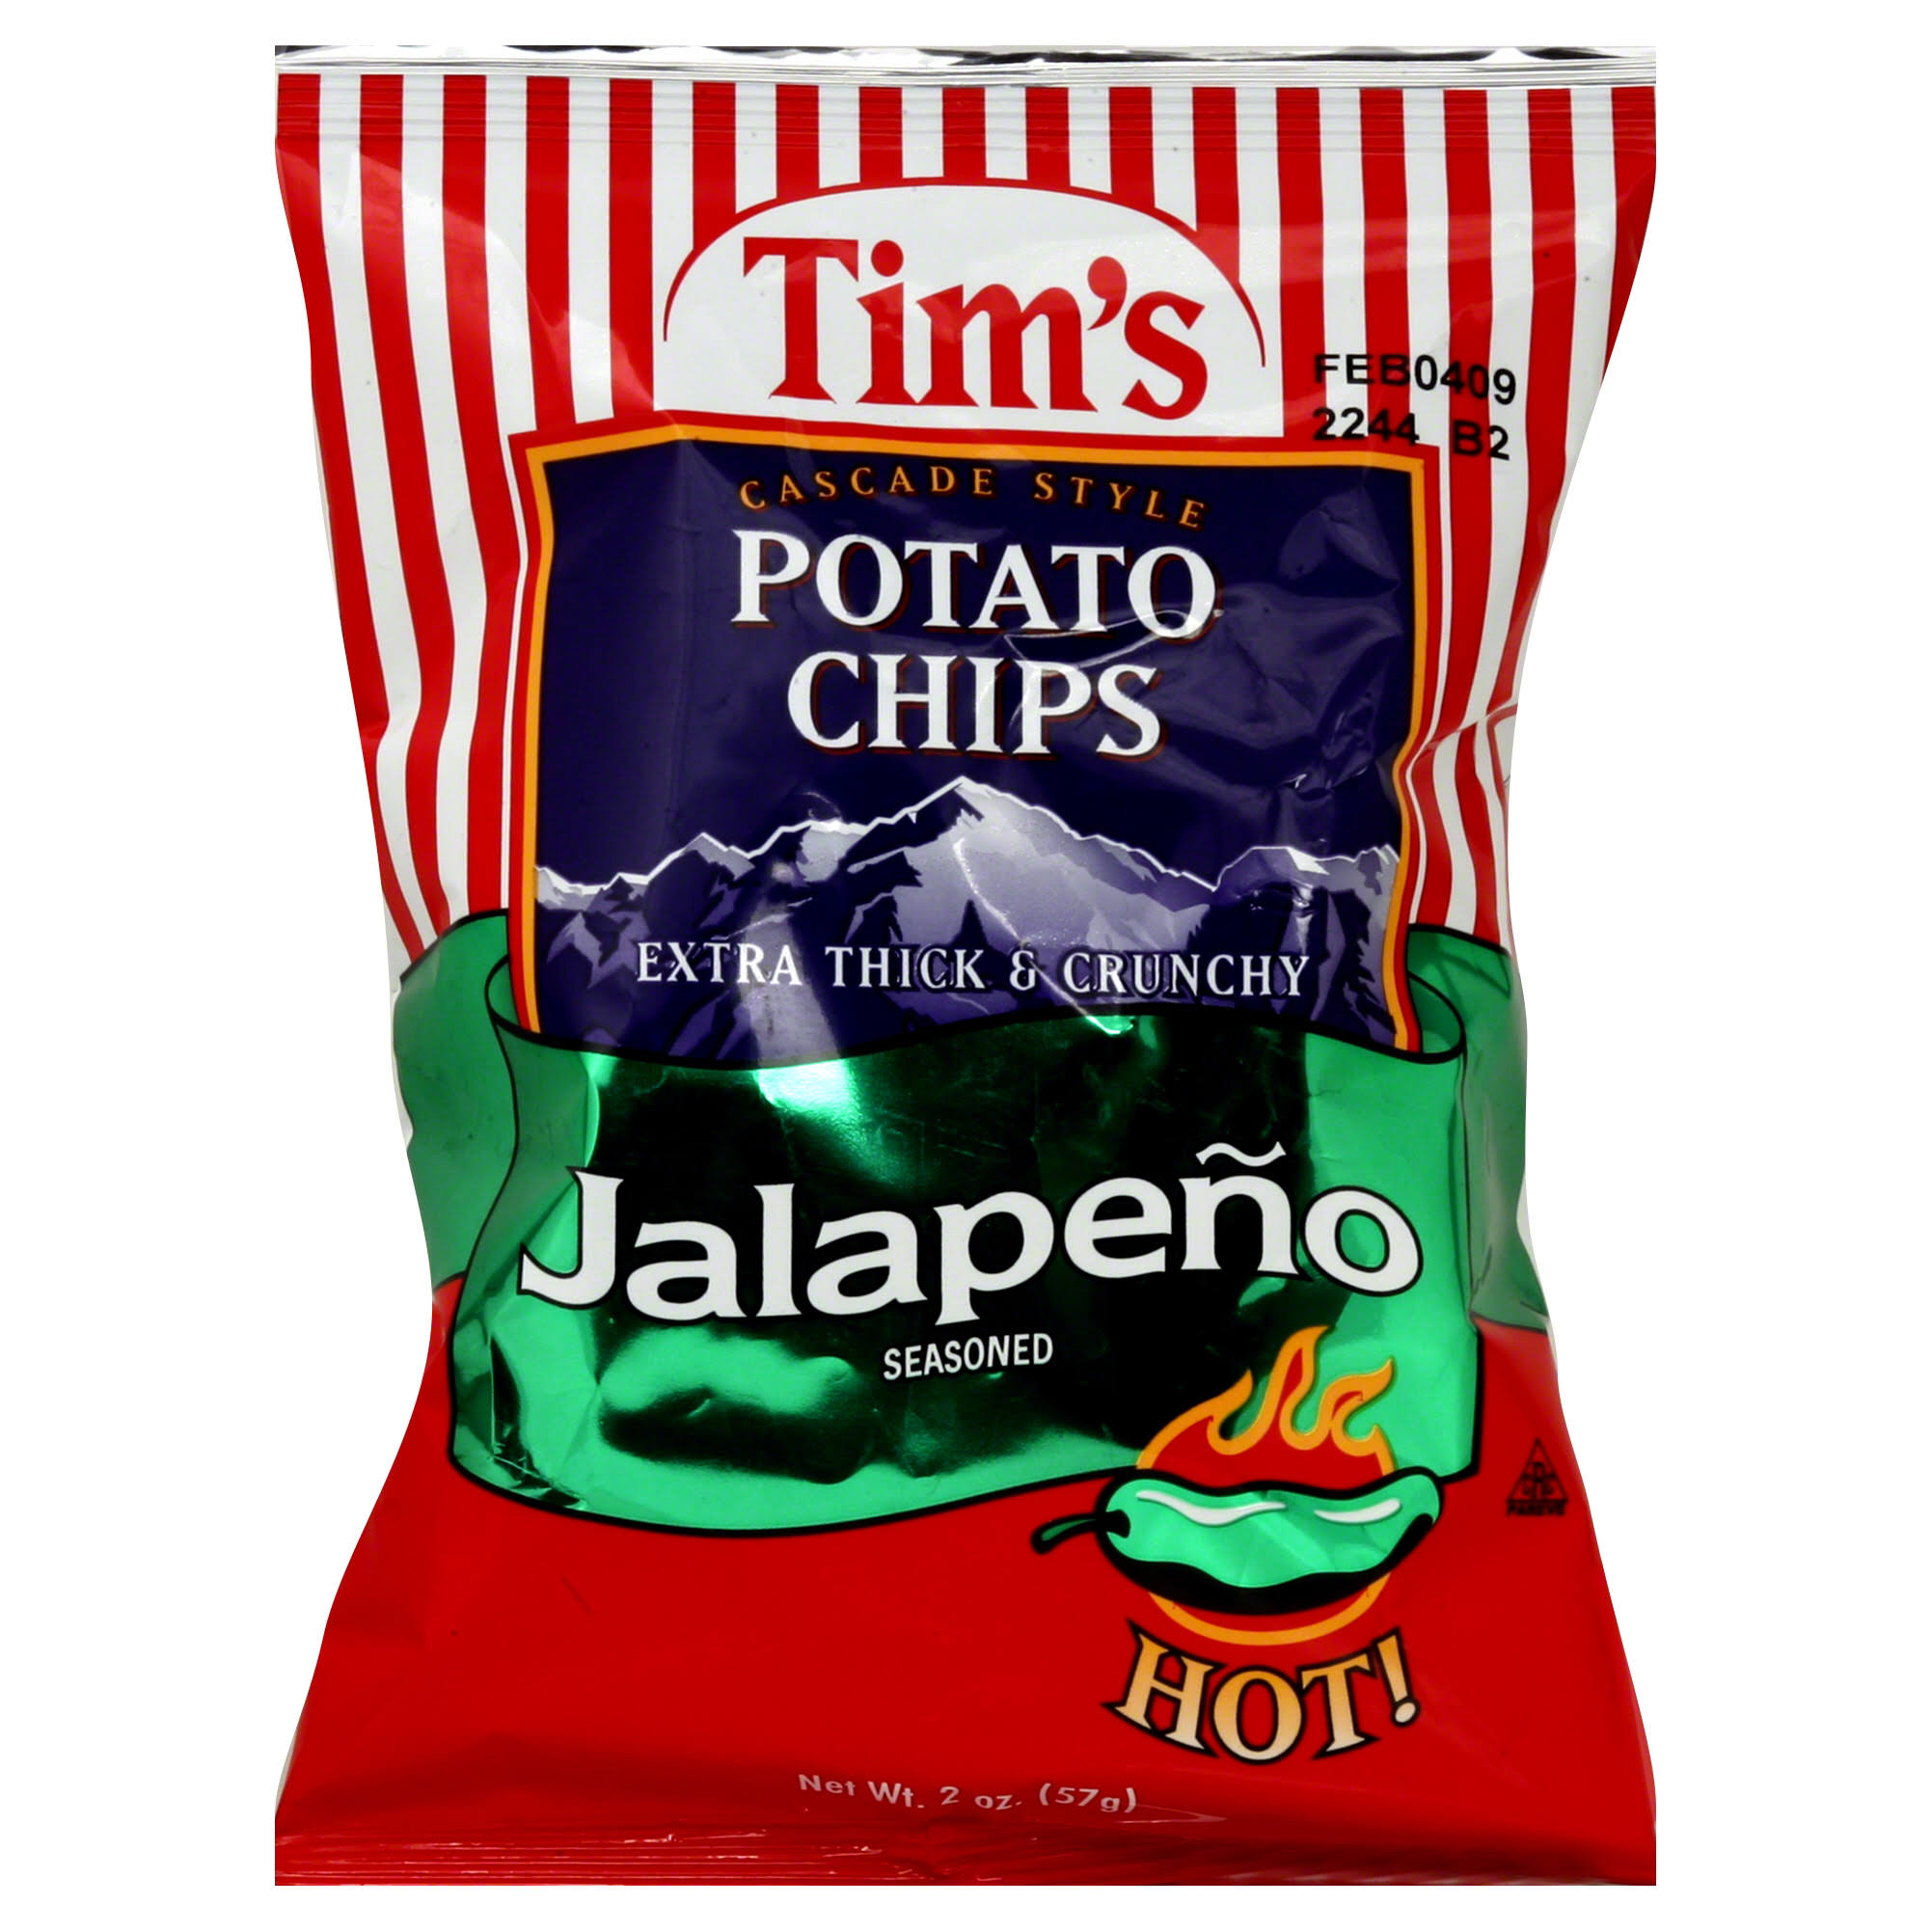 Tim's Cascade Style Jalapeno Seasoned Potato Chips